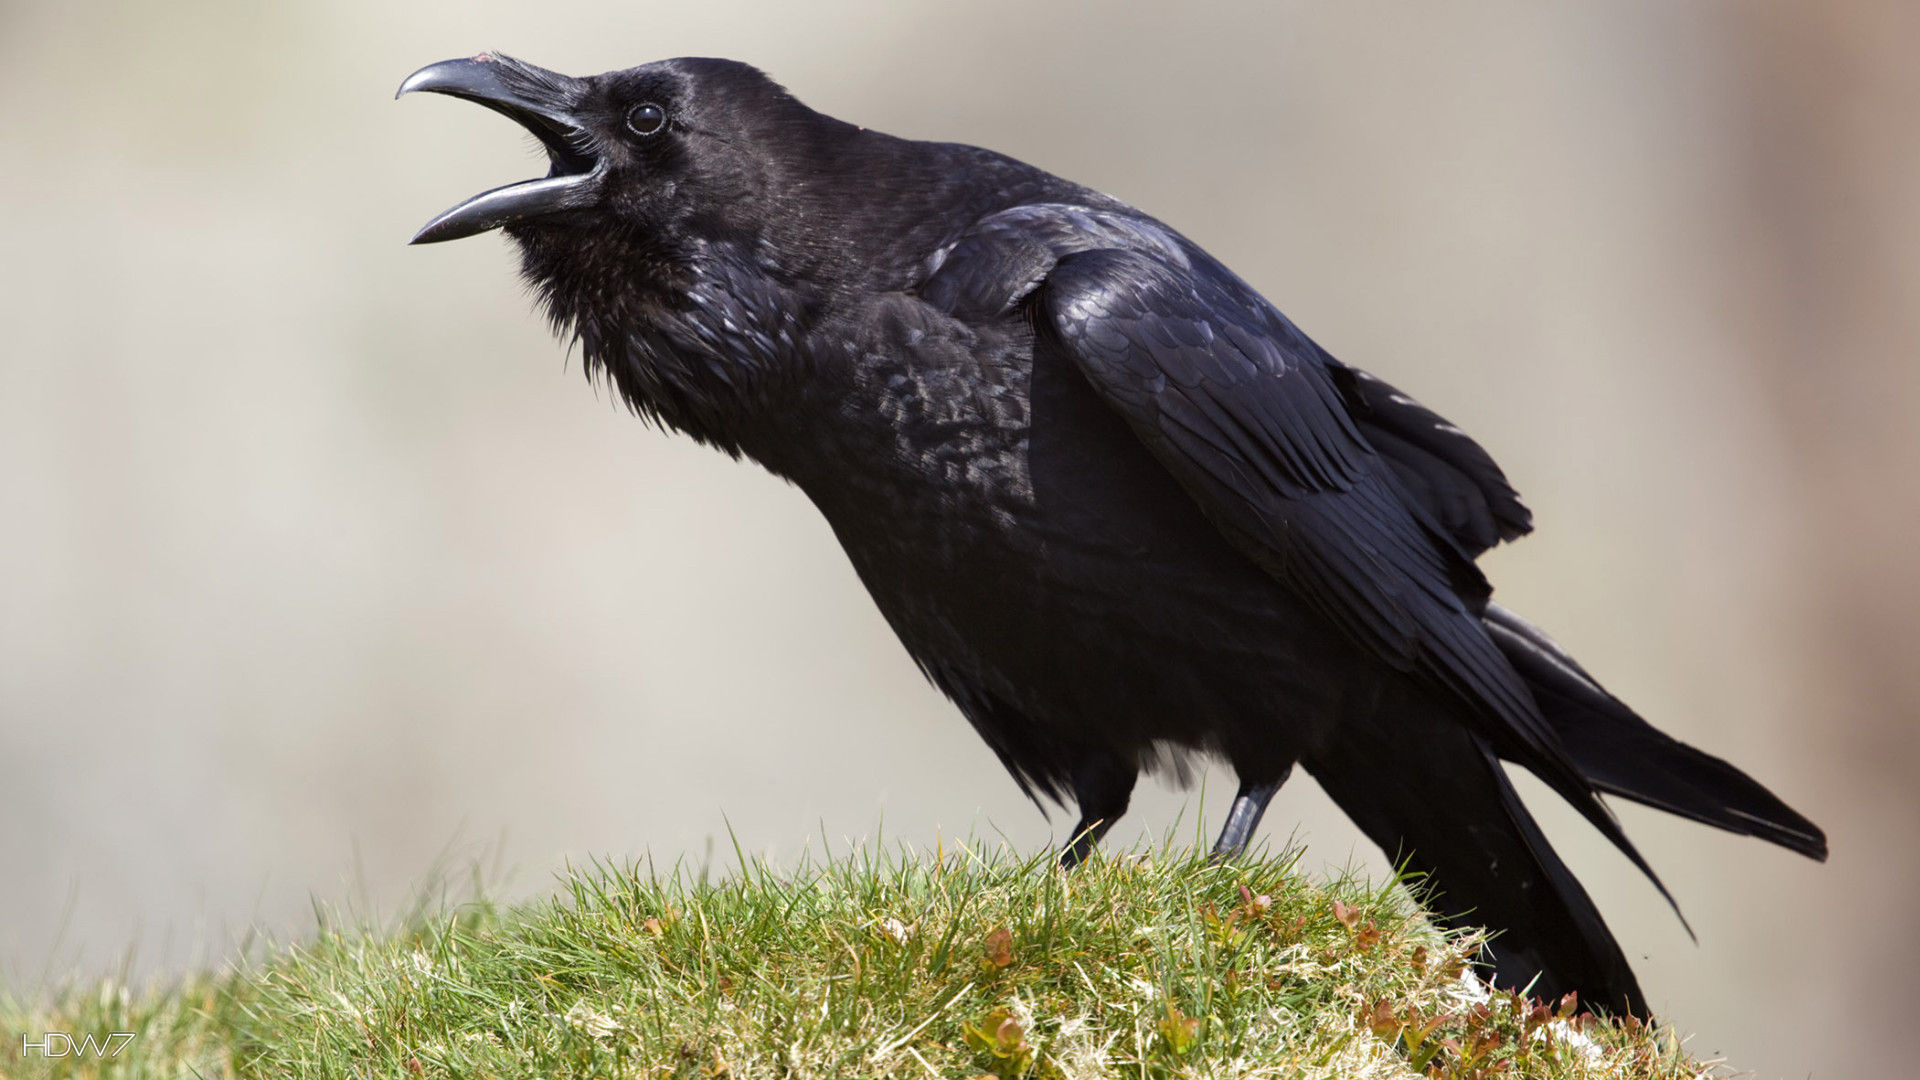 wallpaper name raven talking bird jpg wallpaper added may 24 2015 1920x1080